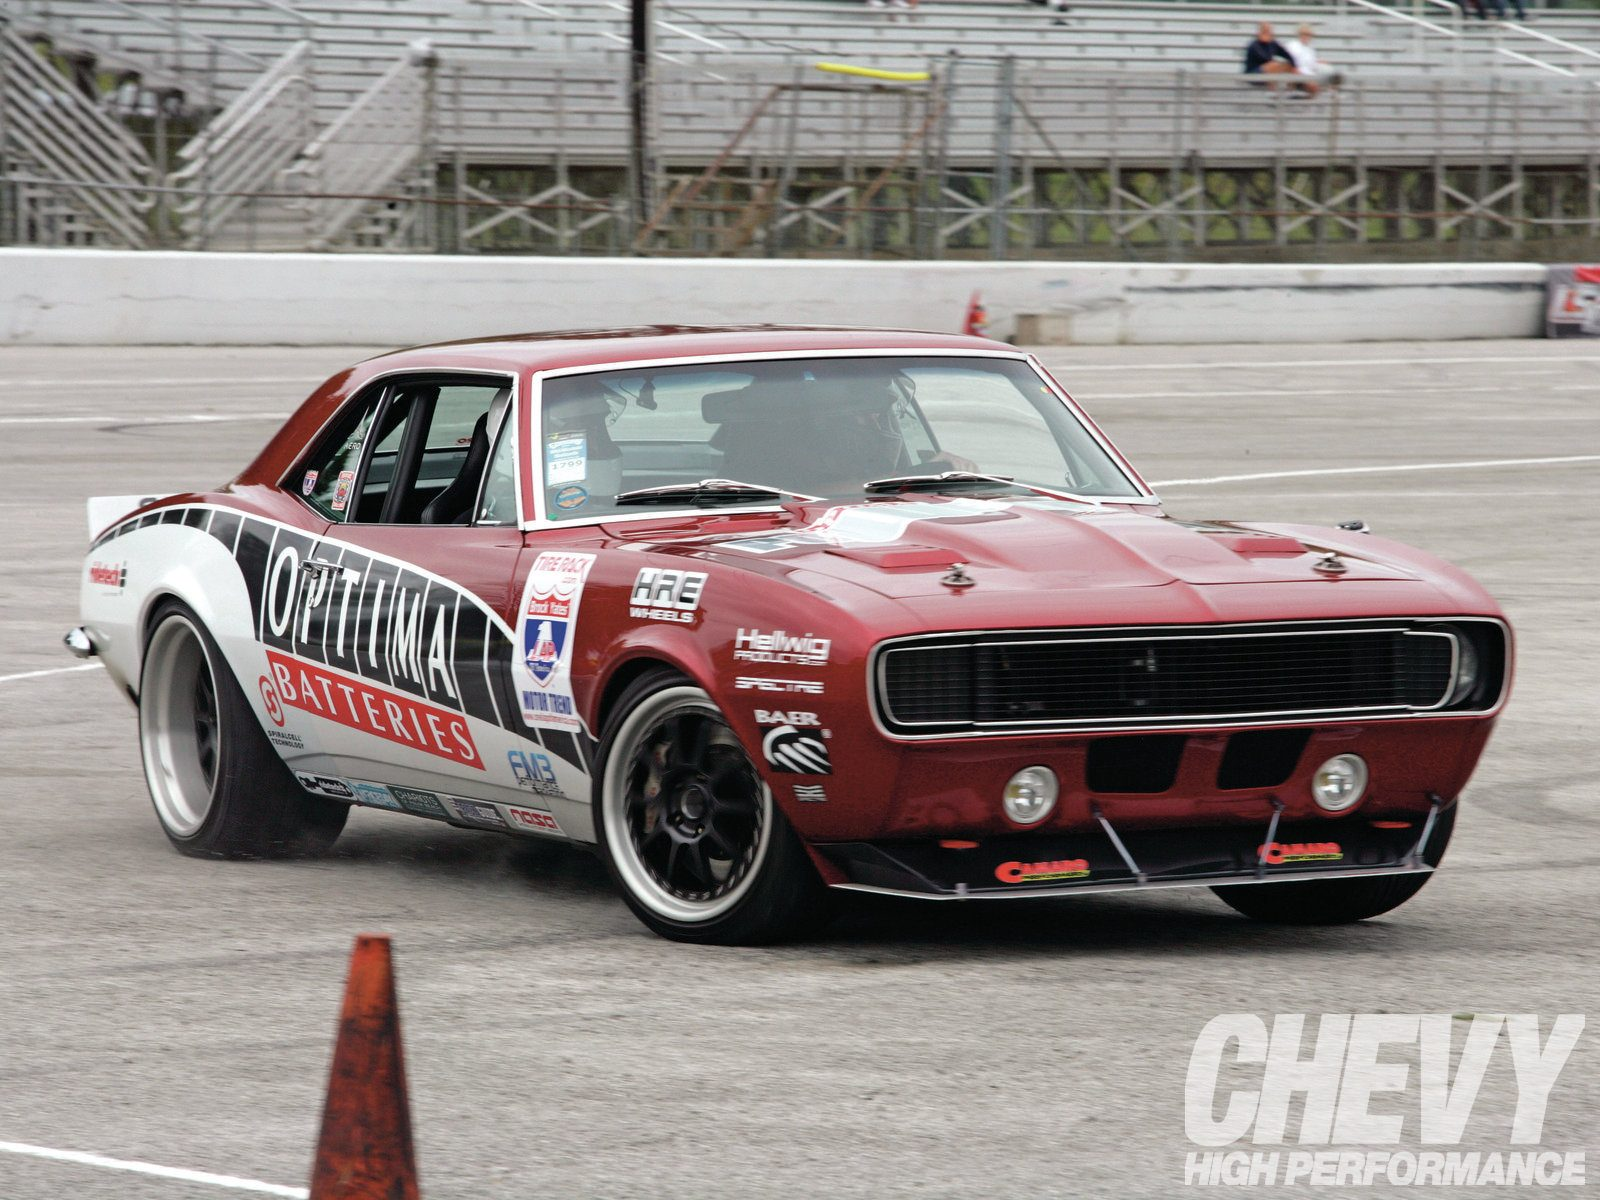 1202chp-08-o-+holley-second-annual-ls-fest+camaro-race-car.jpg